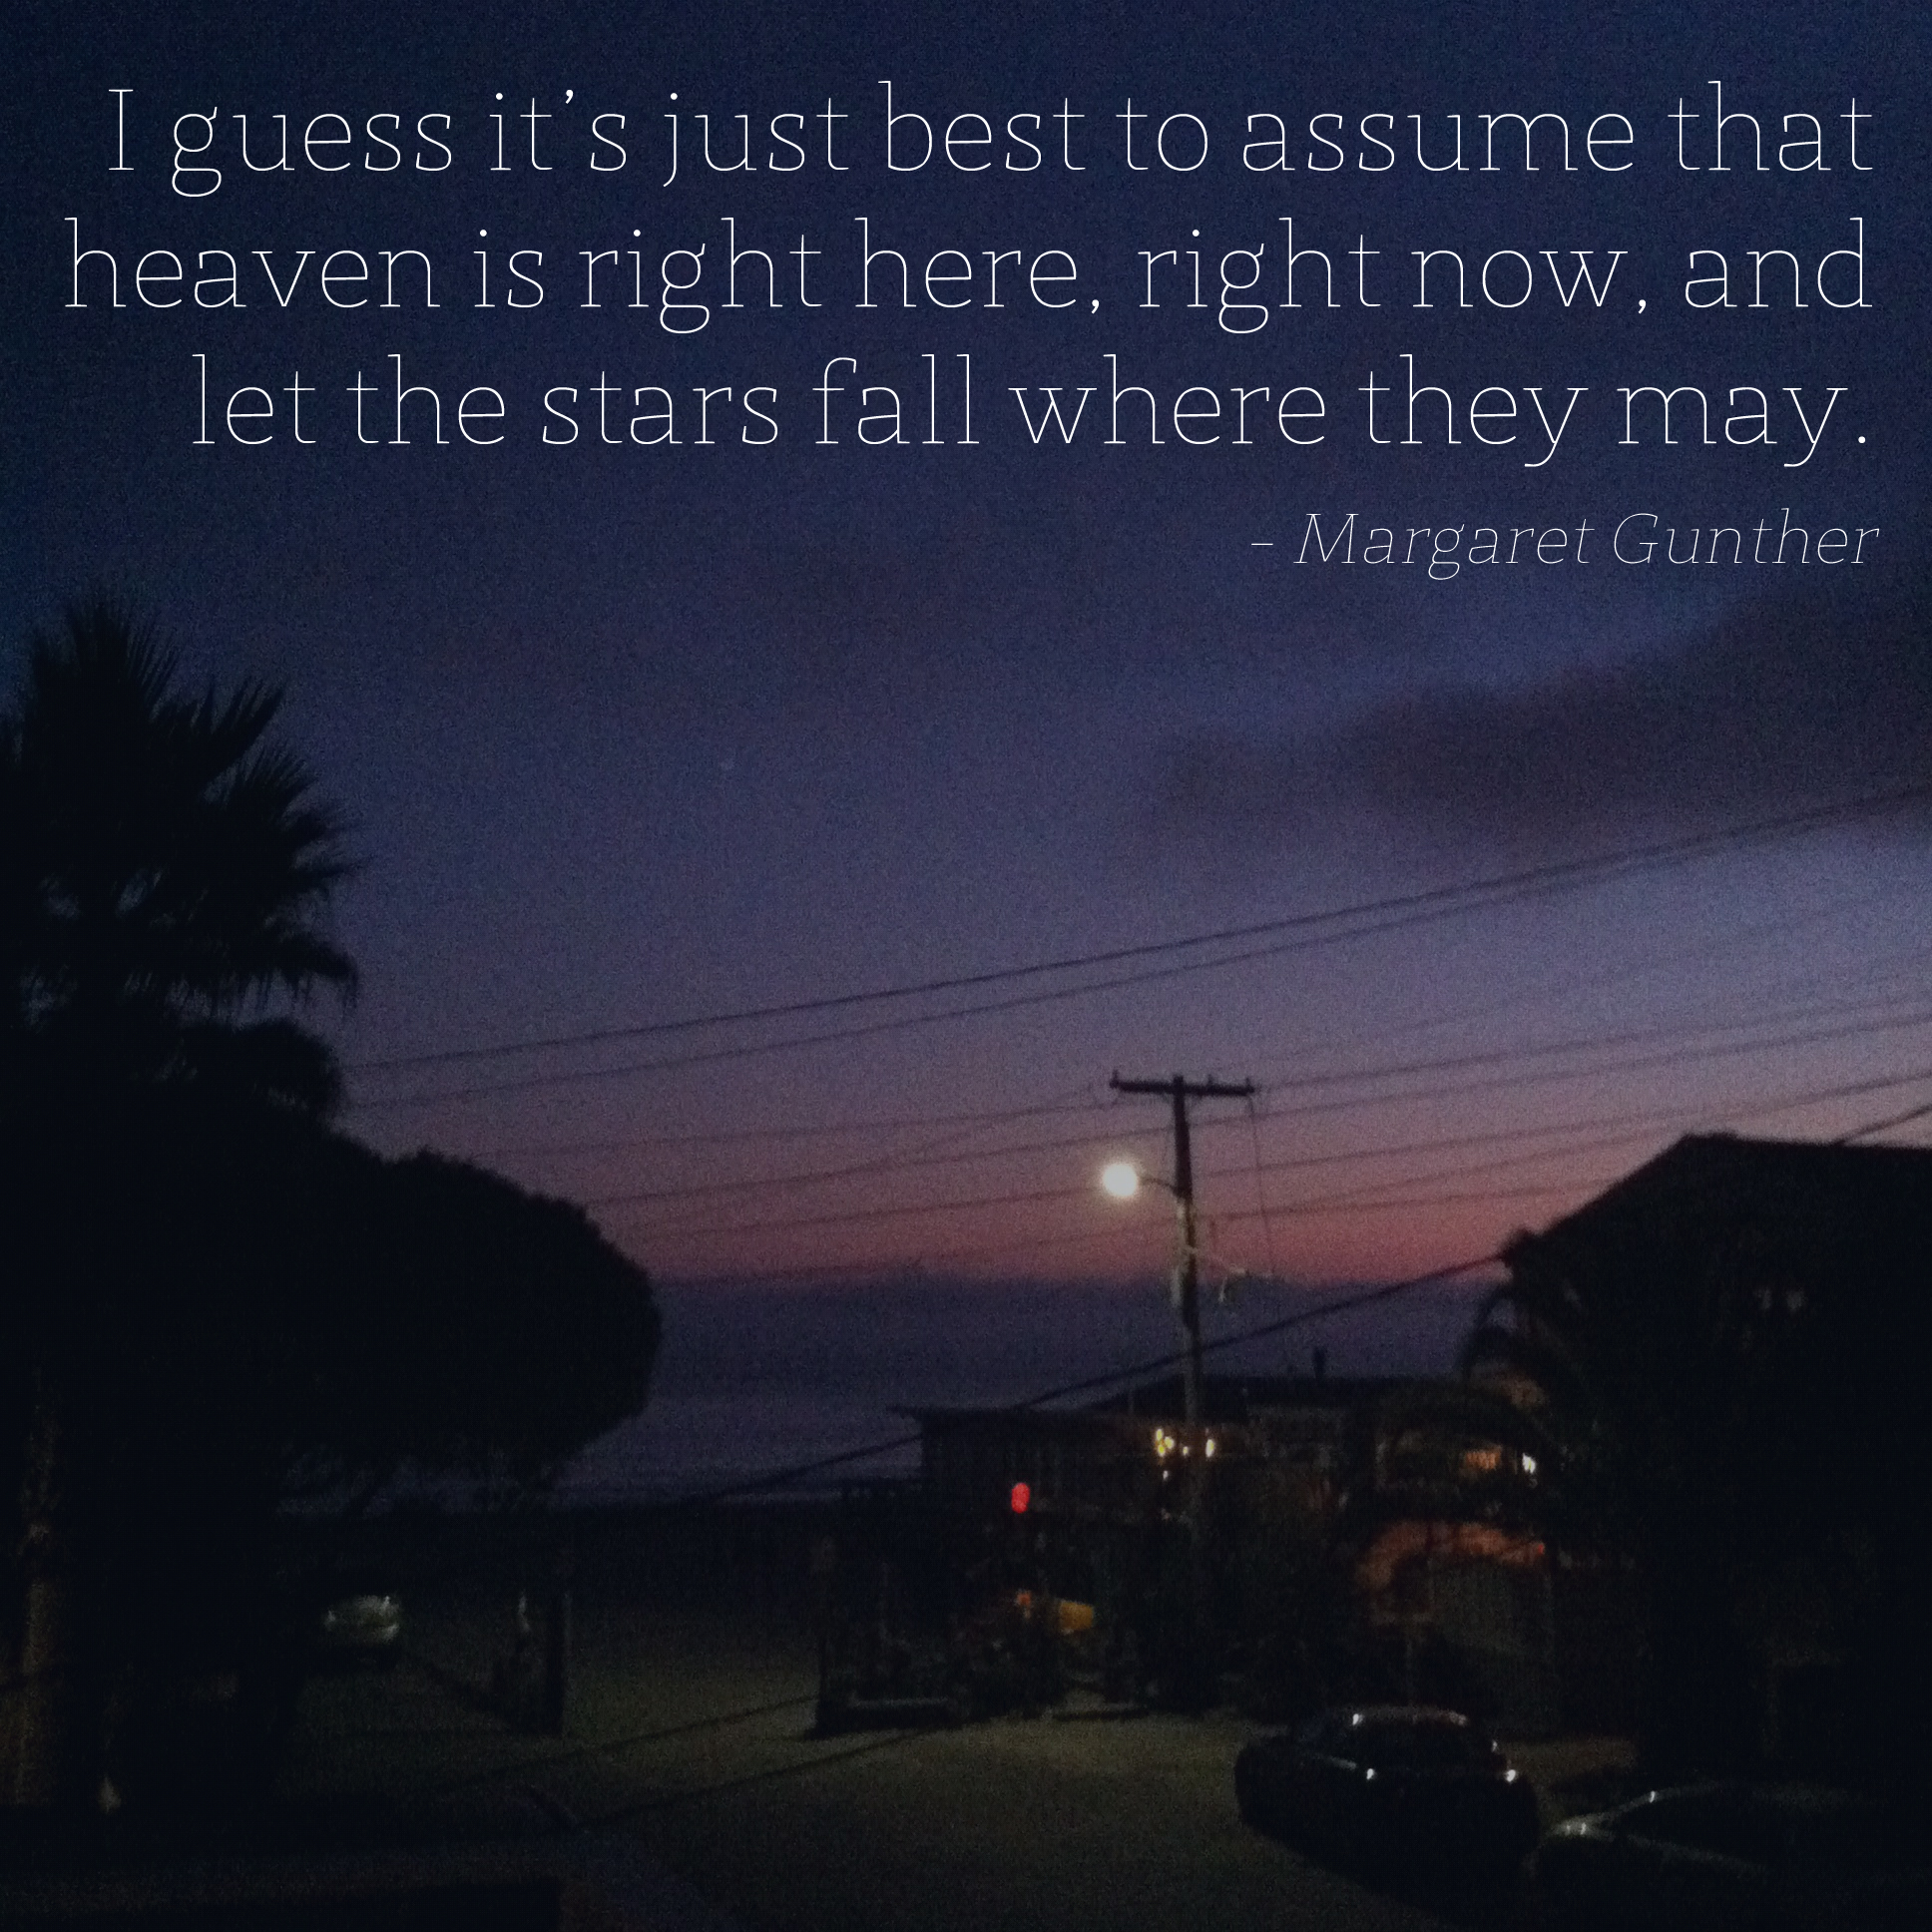 stars-fall-where-they-may